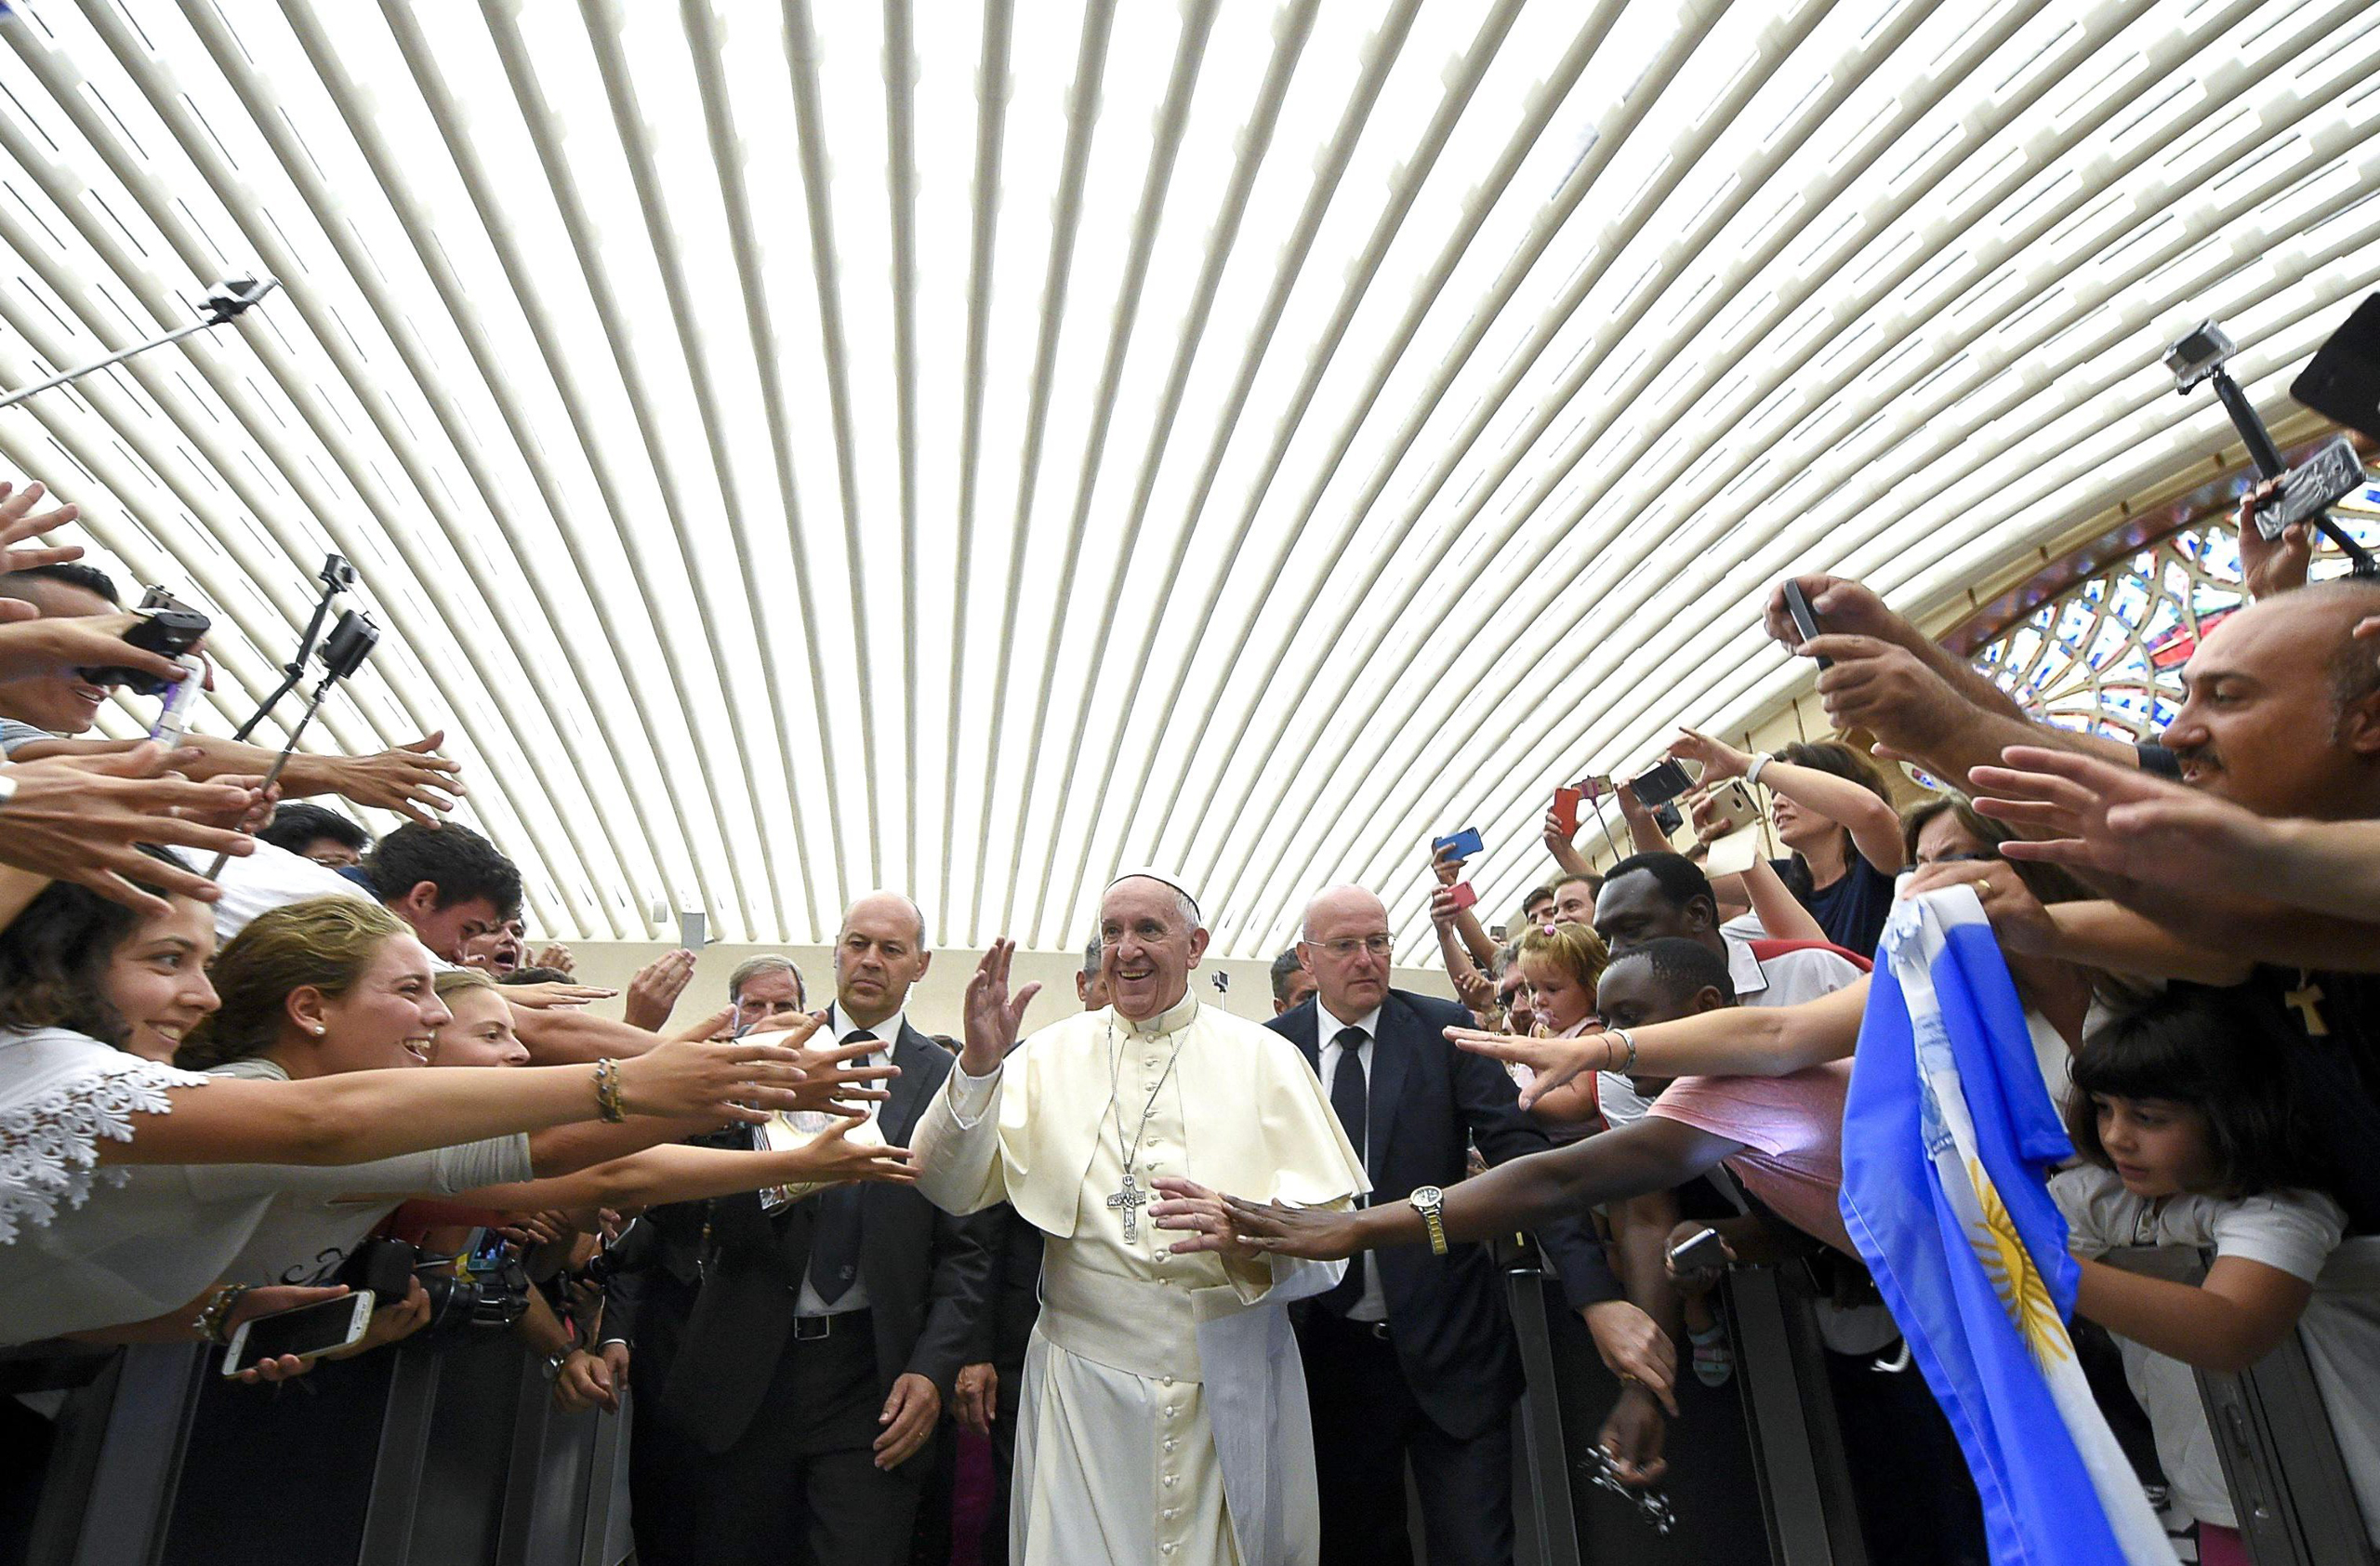 Pope Francis greeting faithful during his weekly general audience, in the Paul VI Hall, Vatican City, on Aug. 03, 2016.